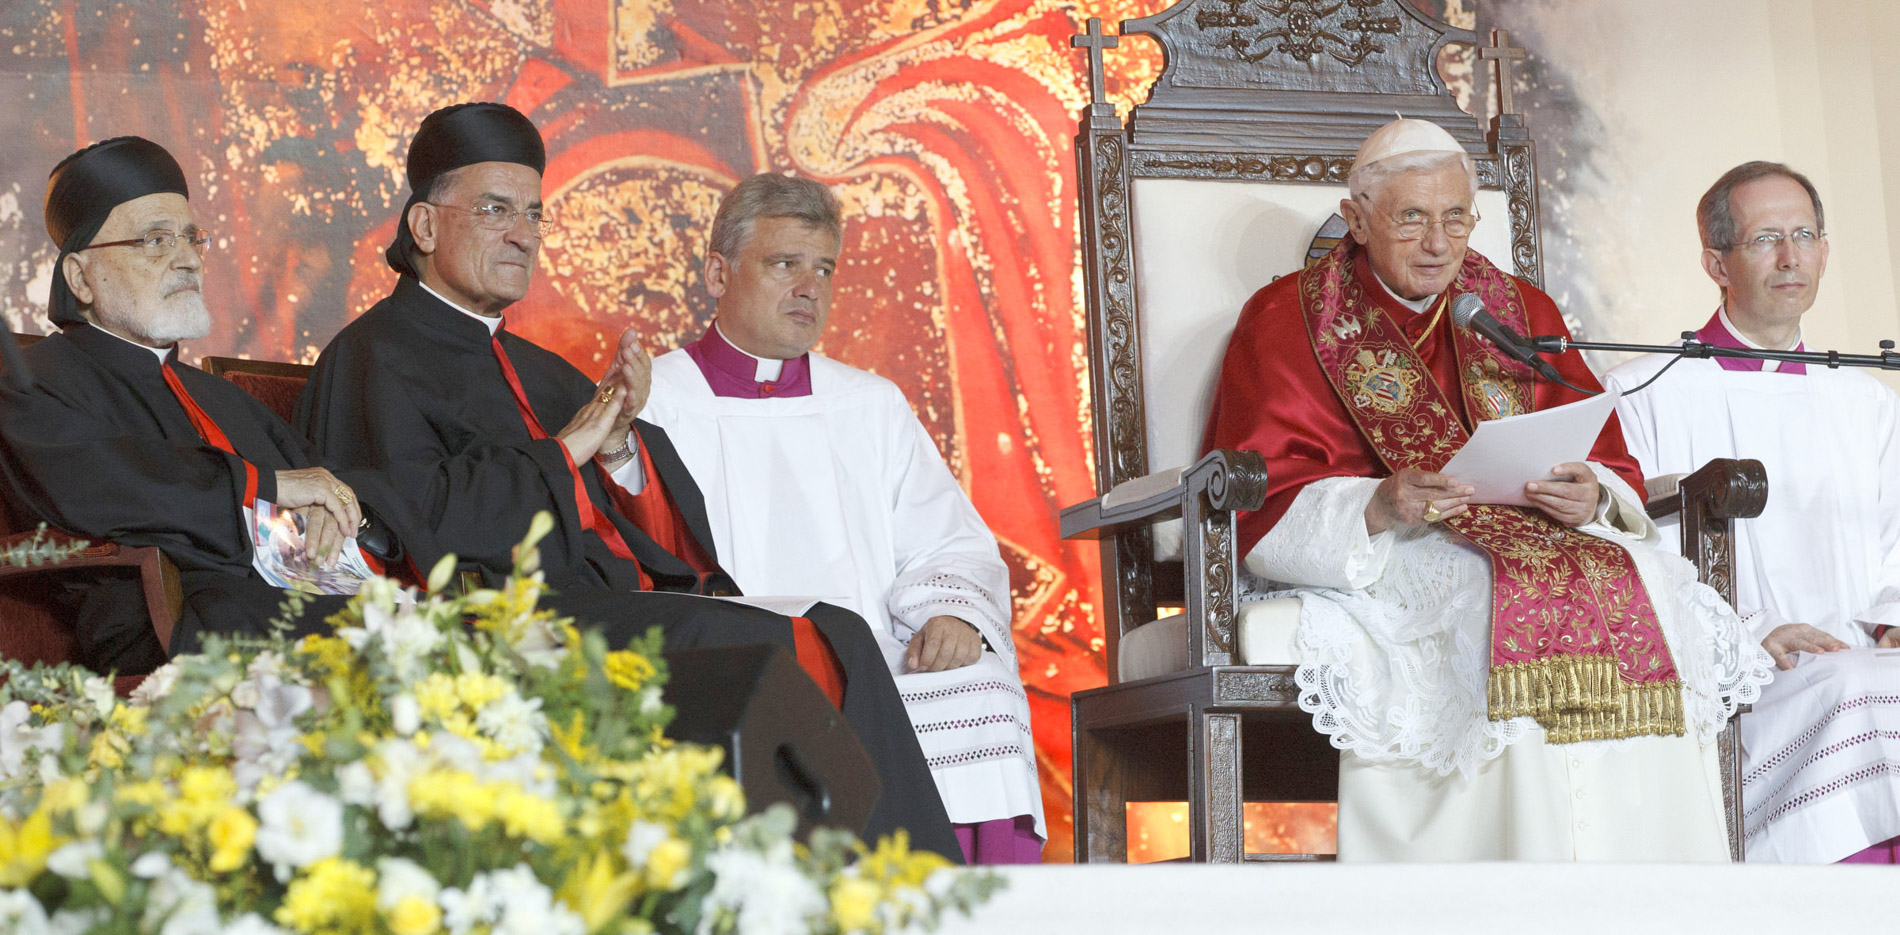 Pope Benedict XVI delivers his talk during a meeting with young people outside the Maronite patriarch's residence in Bkerke, Lebanon, Sept. 15. At left are Cardinal Nasrallah P. Sfeir and Maronite Catholic Patriarch Bechara Rai. (CNS photo/Paul Haring) (Sept. 15, 2012) See LEBANON-YOUTH Sept. 15, 2012.